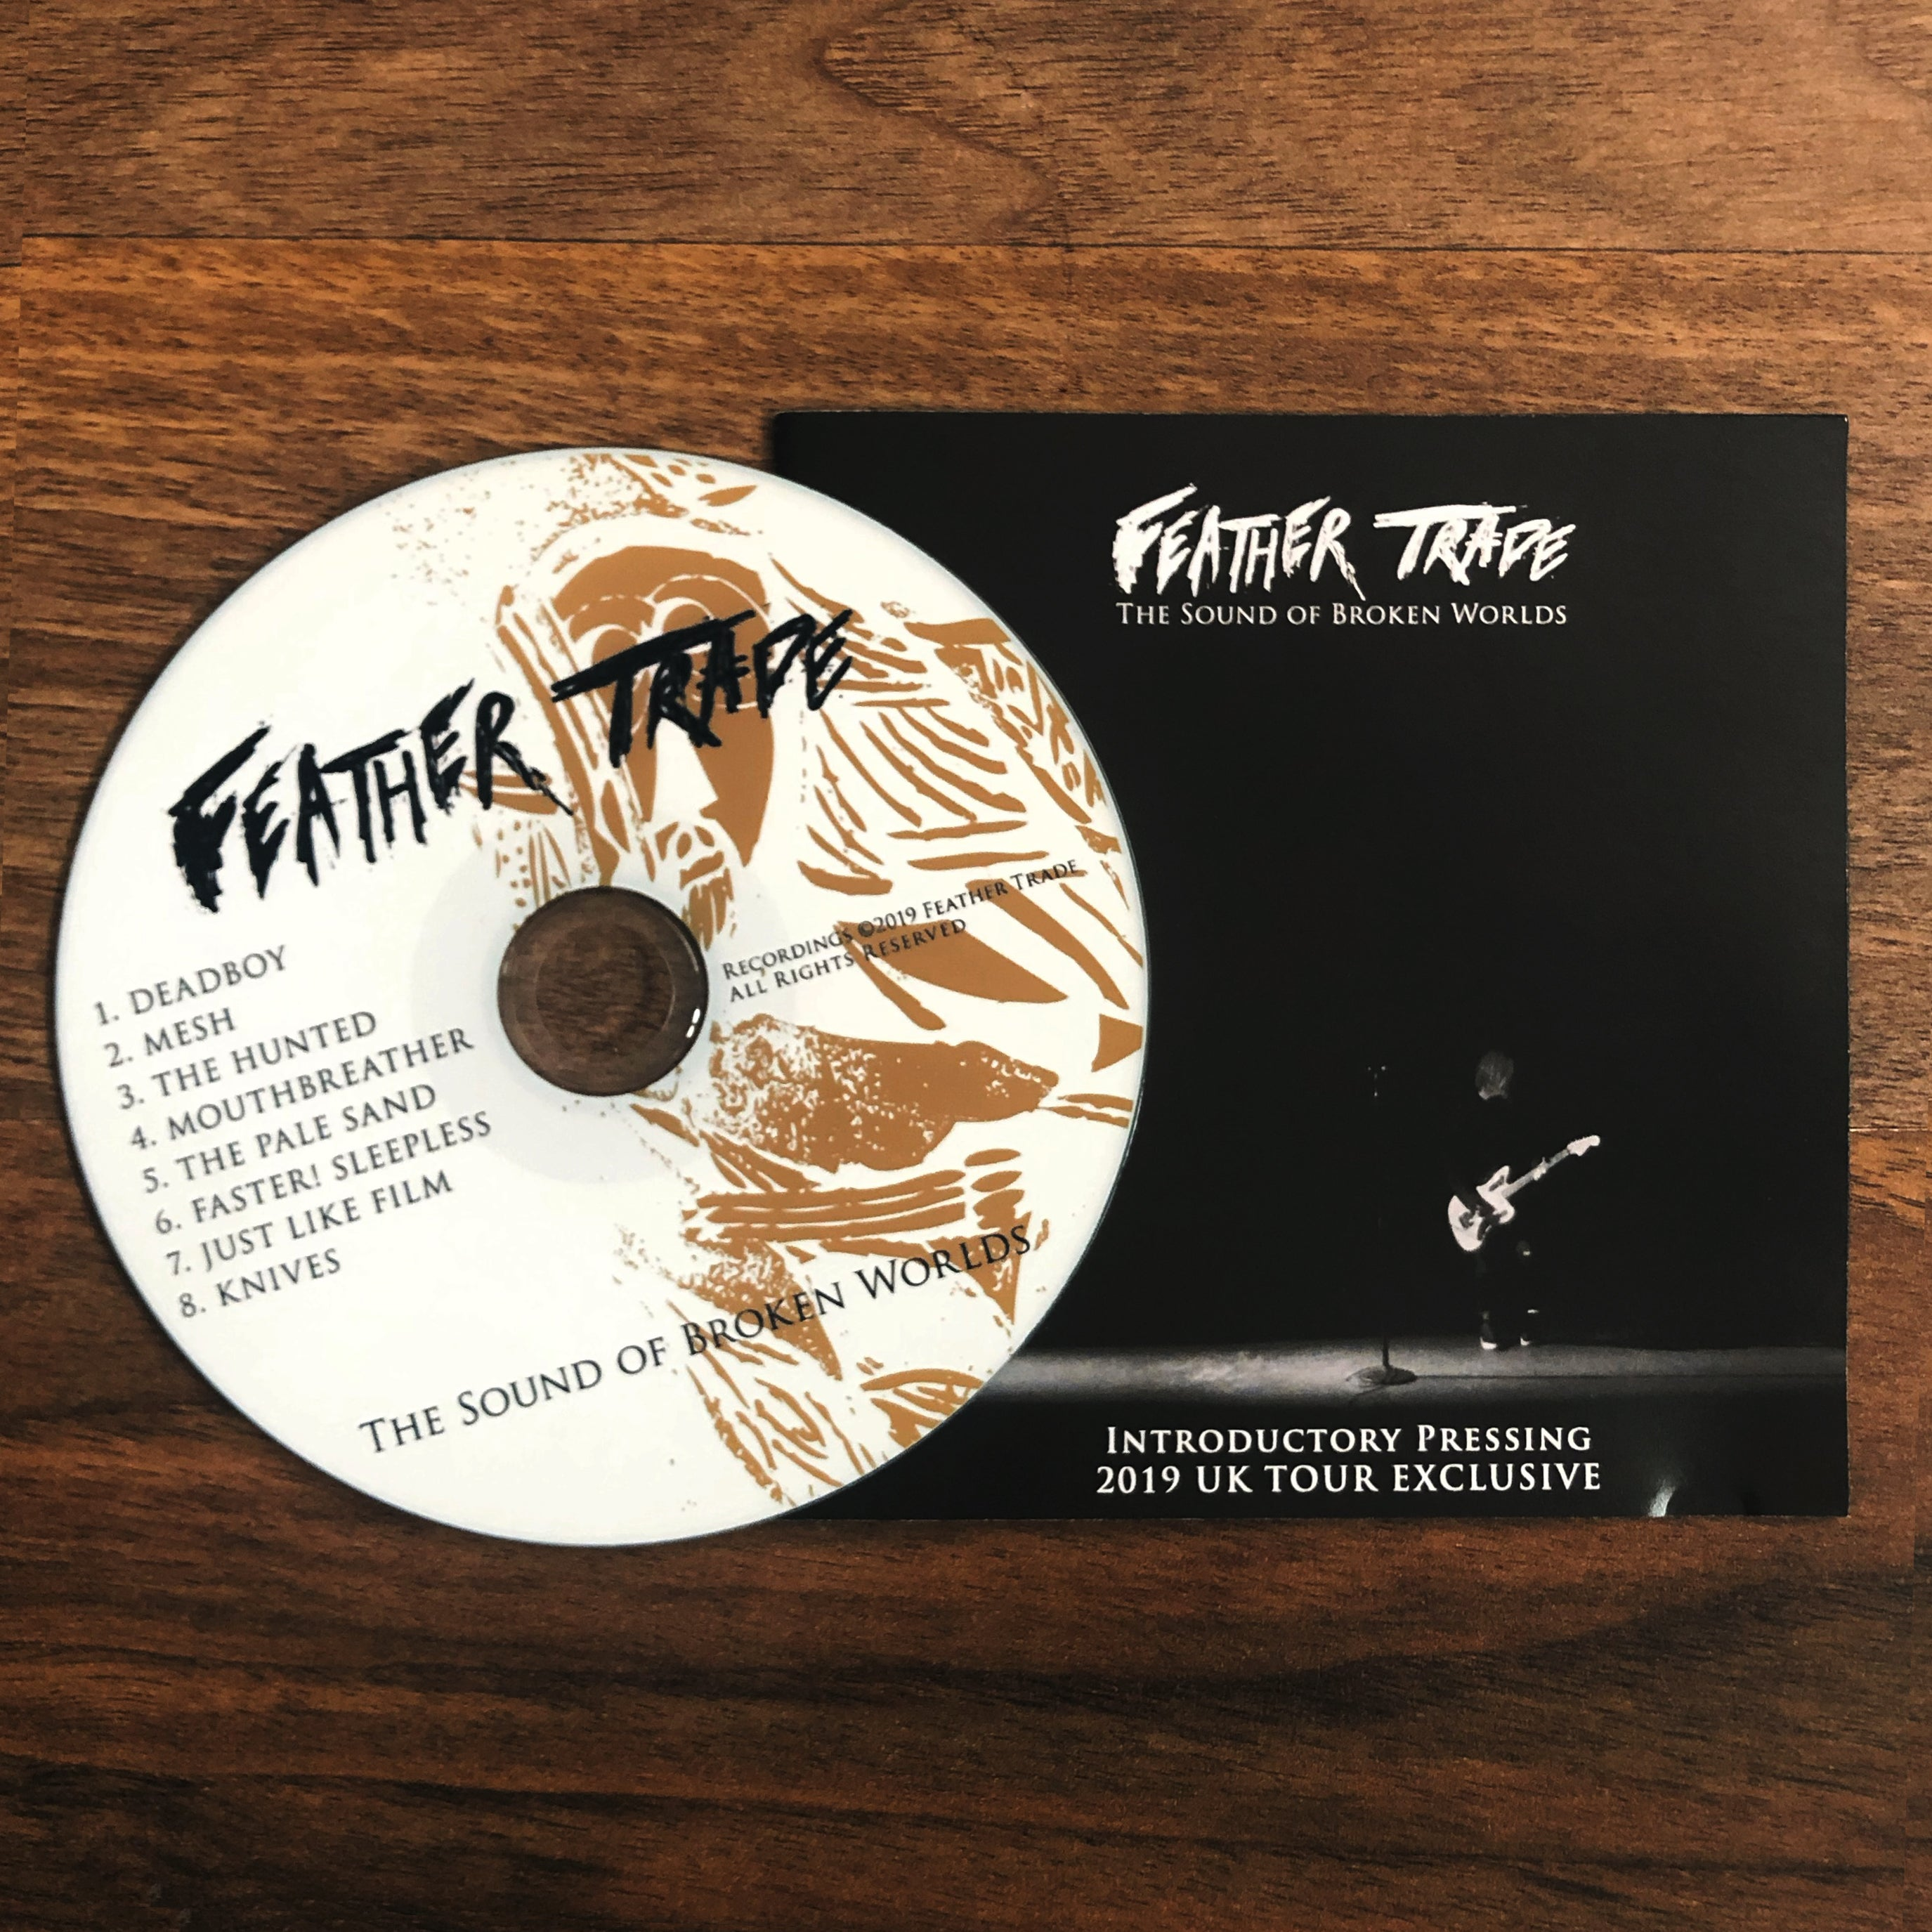 2019 UK TOUR EXCLUSIVE  - INTRODUCTORY PRESSING